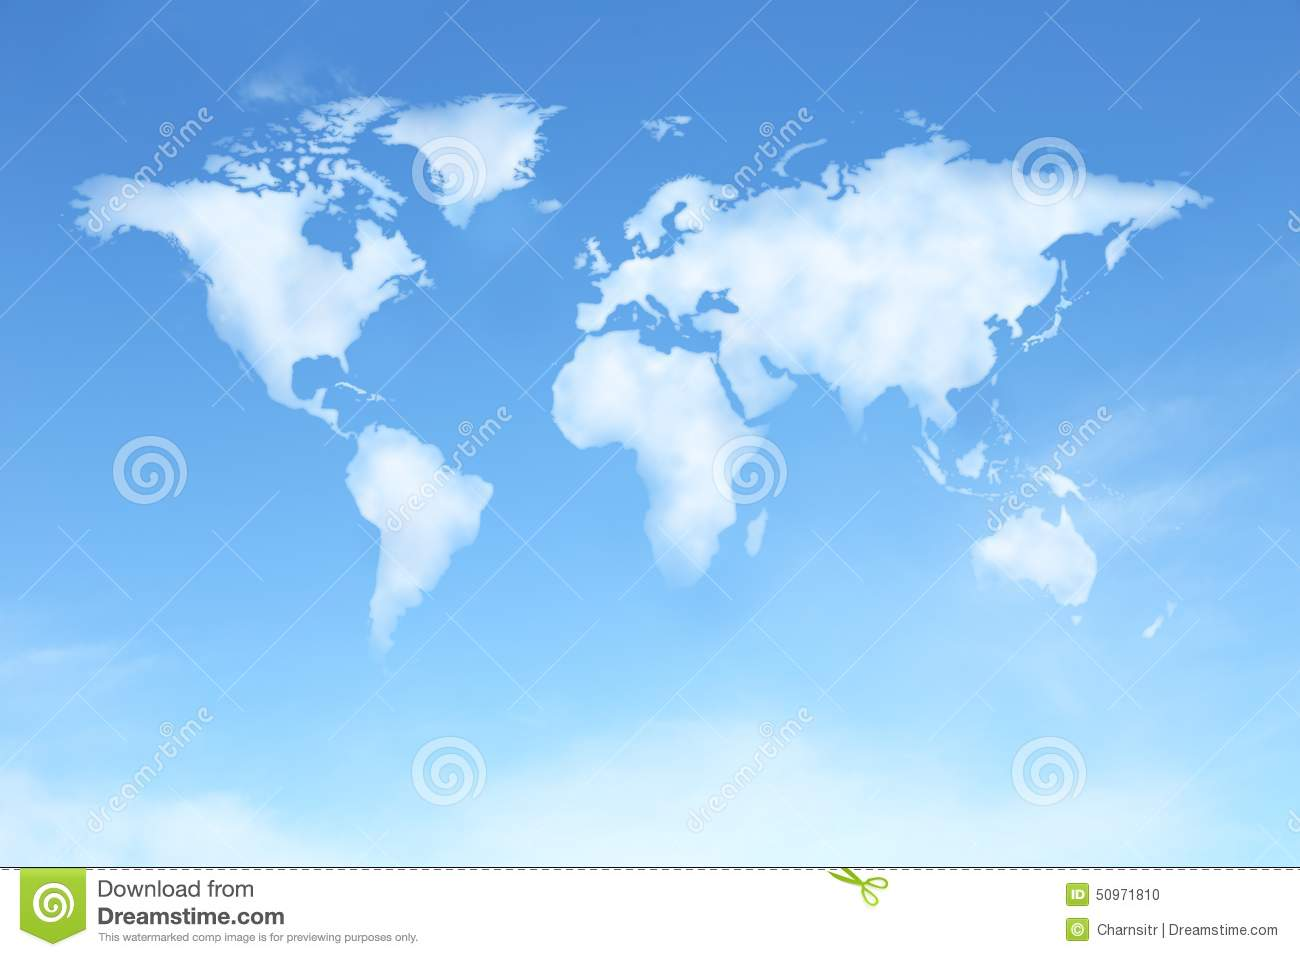 Clear blue sky with world map in cloud shape stock illustration clear blue sky with world map in cloud shape gumiabroncs Choice Image